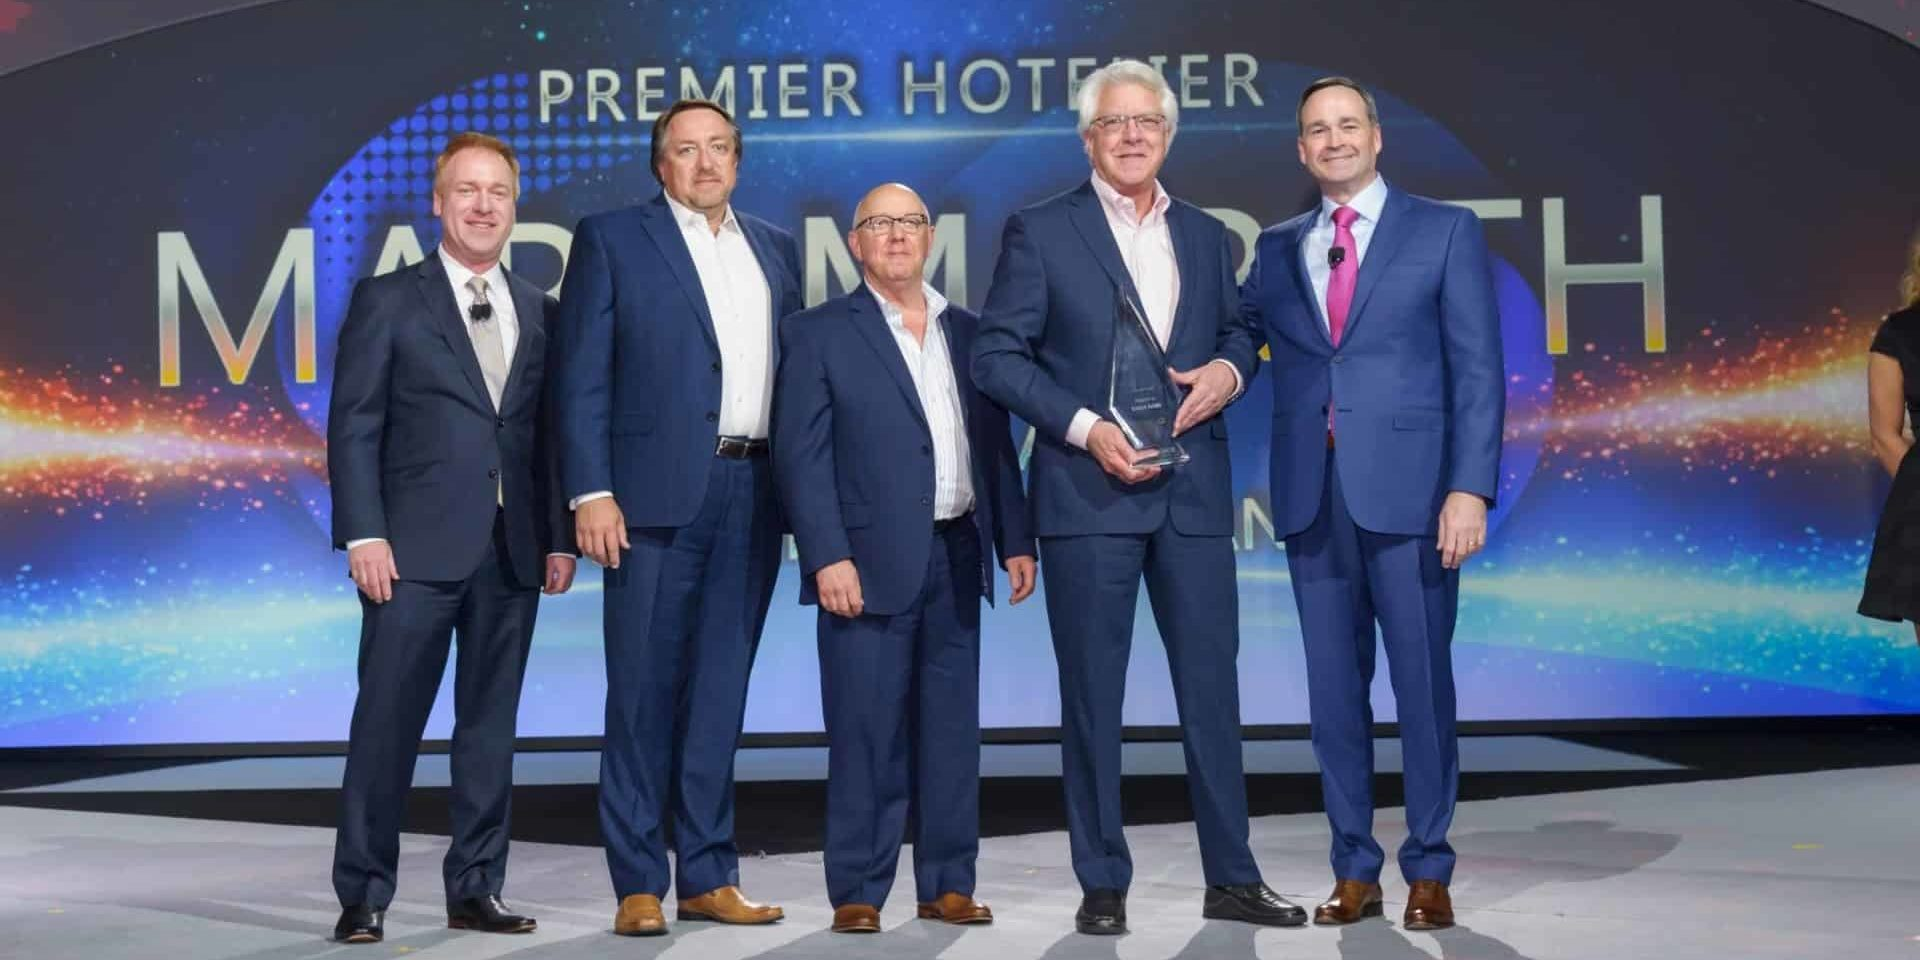 press release, hotelier of the year